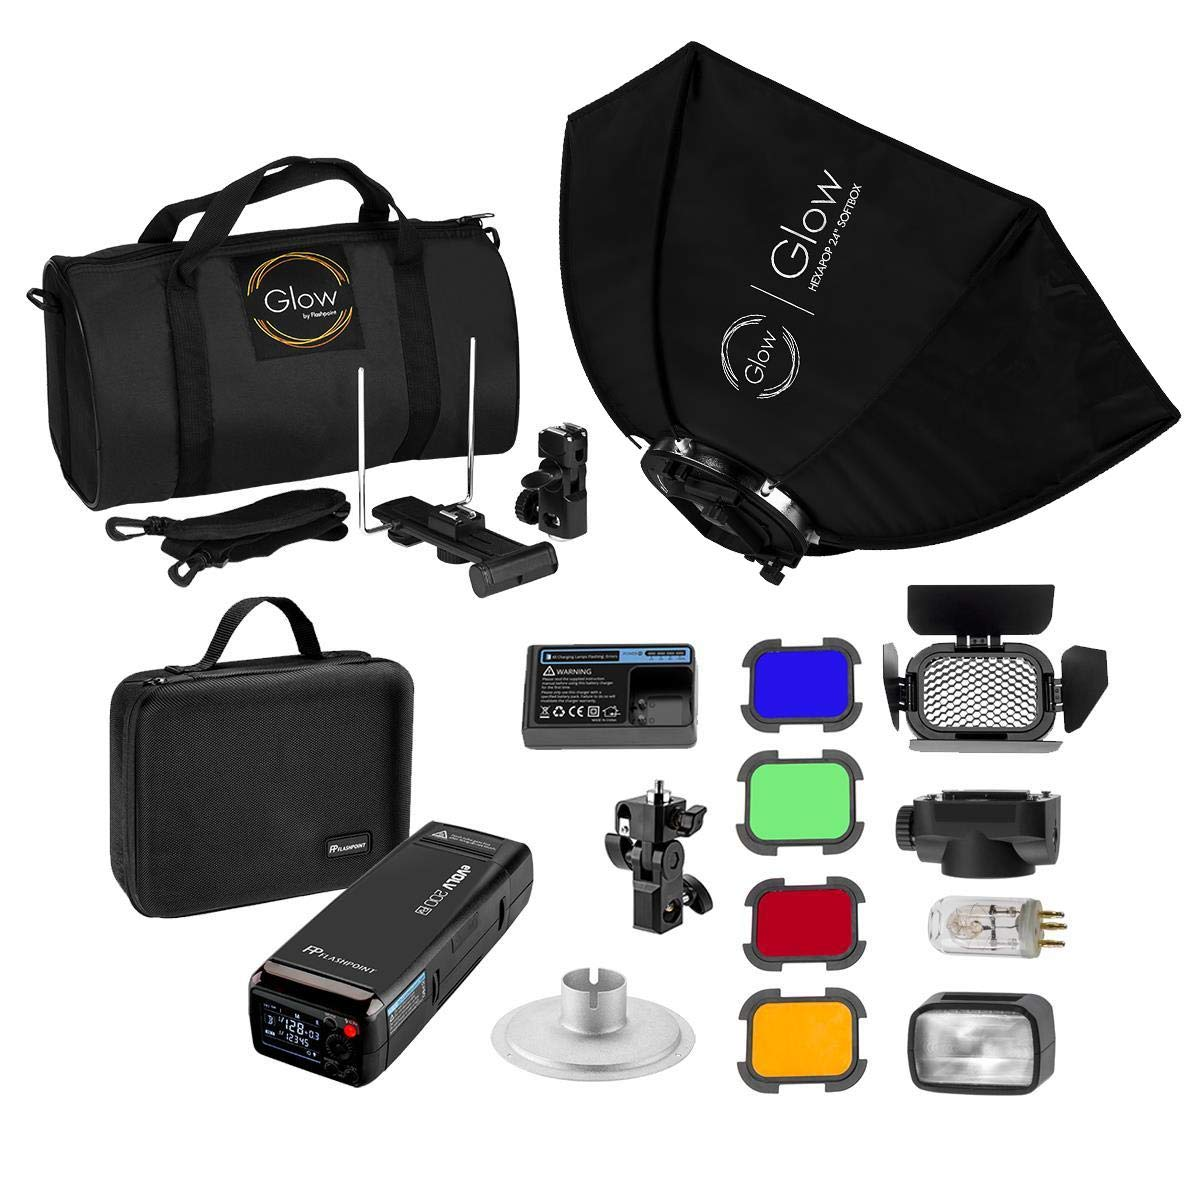 Flashpoint eVOLV 200 TTL Pocket Flash Exclusive HexaPop Kit (Godox AD200 TTL Pocket Flash) by Flashpoint